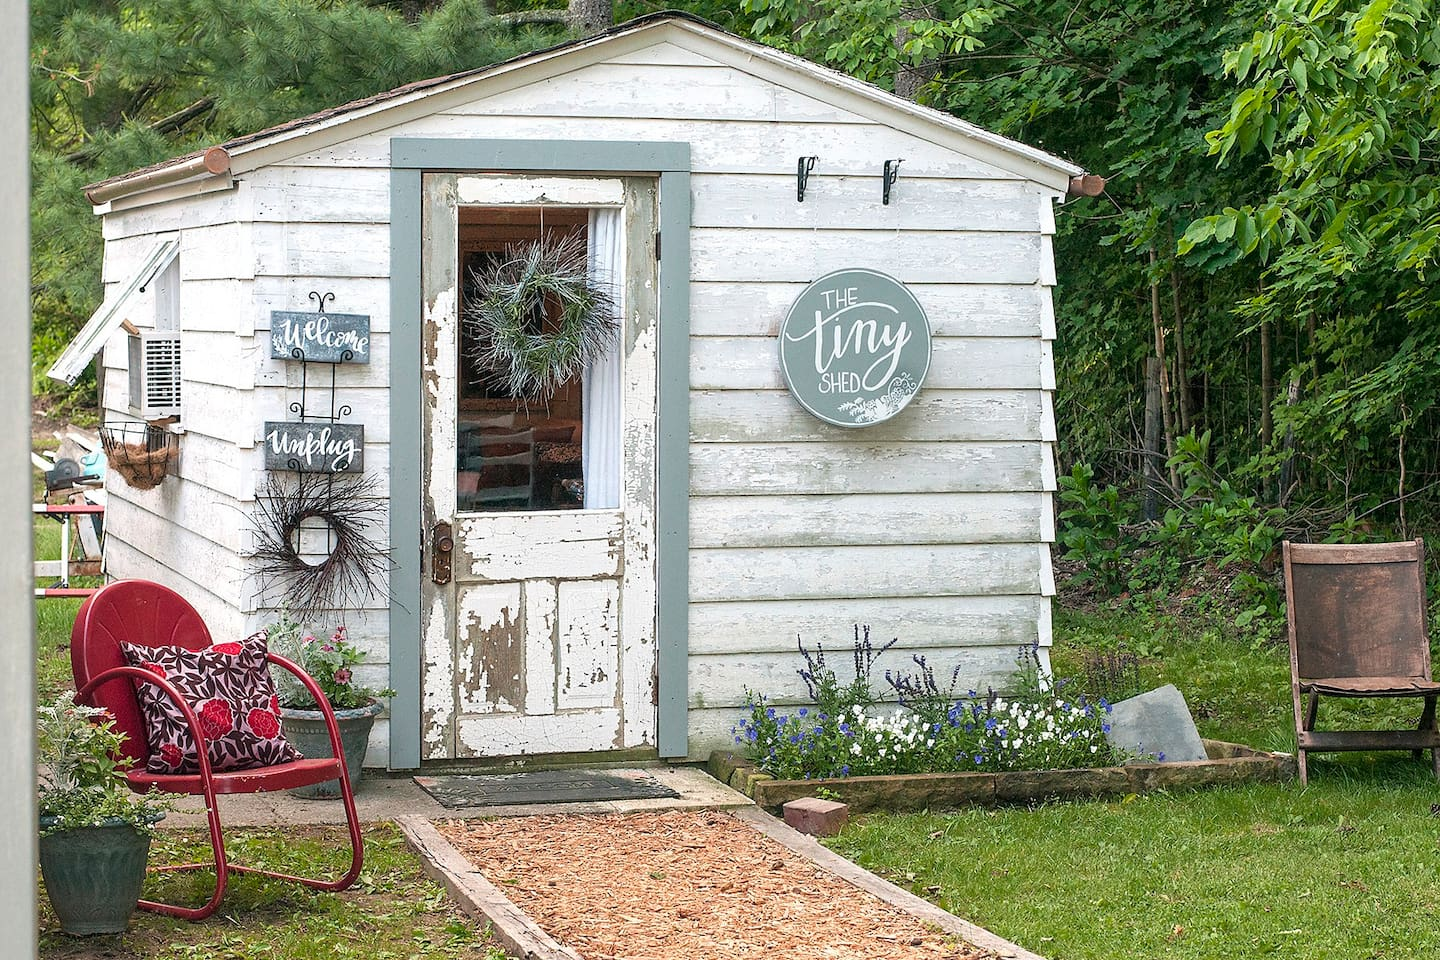 Summer at The Tiny Shed